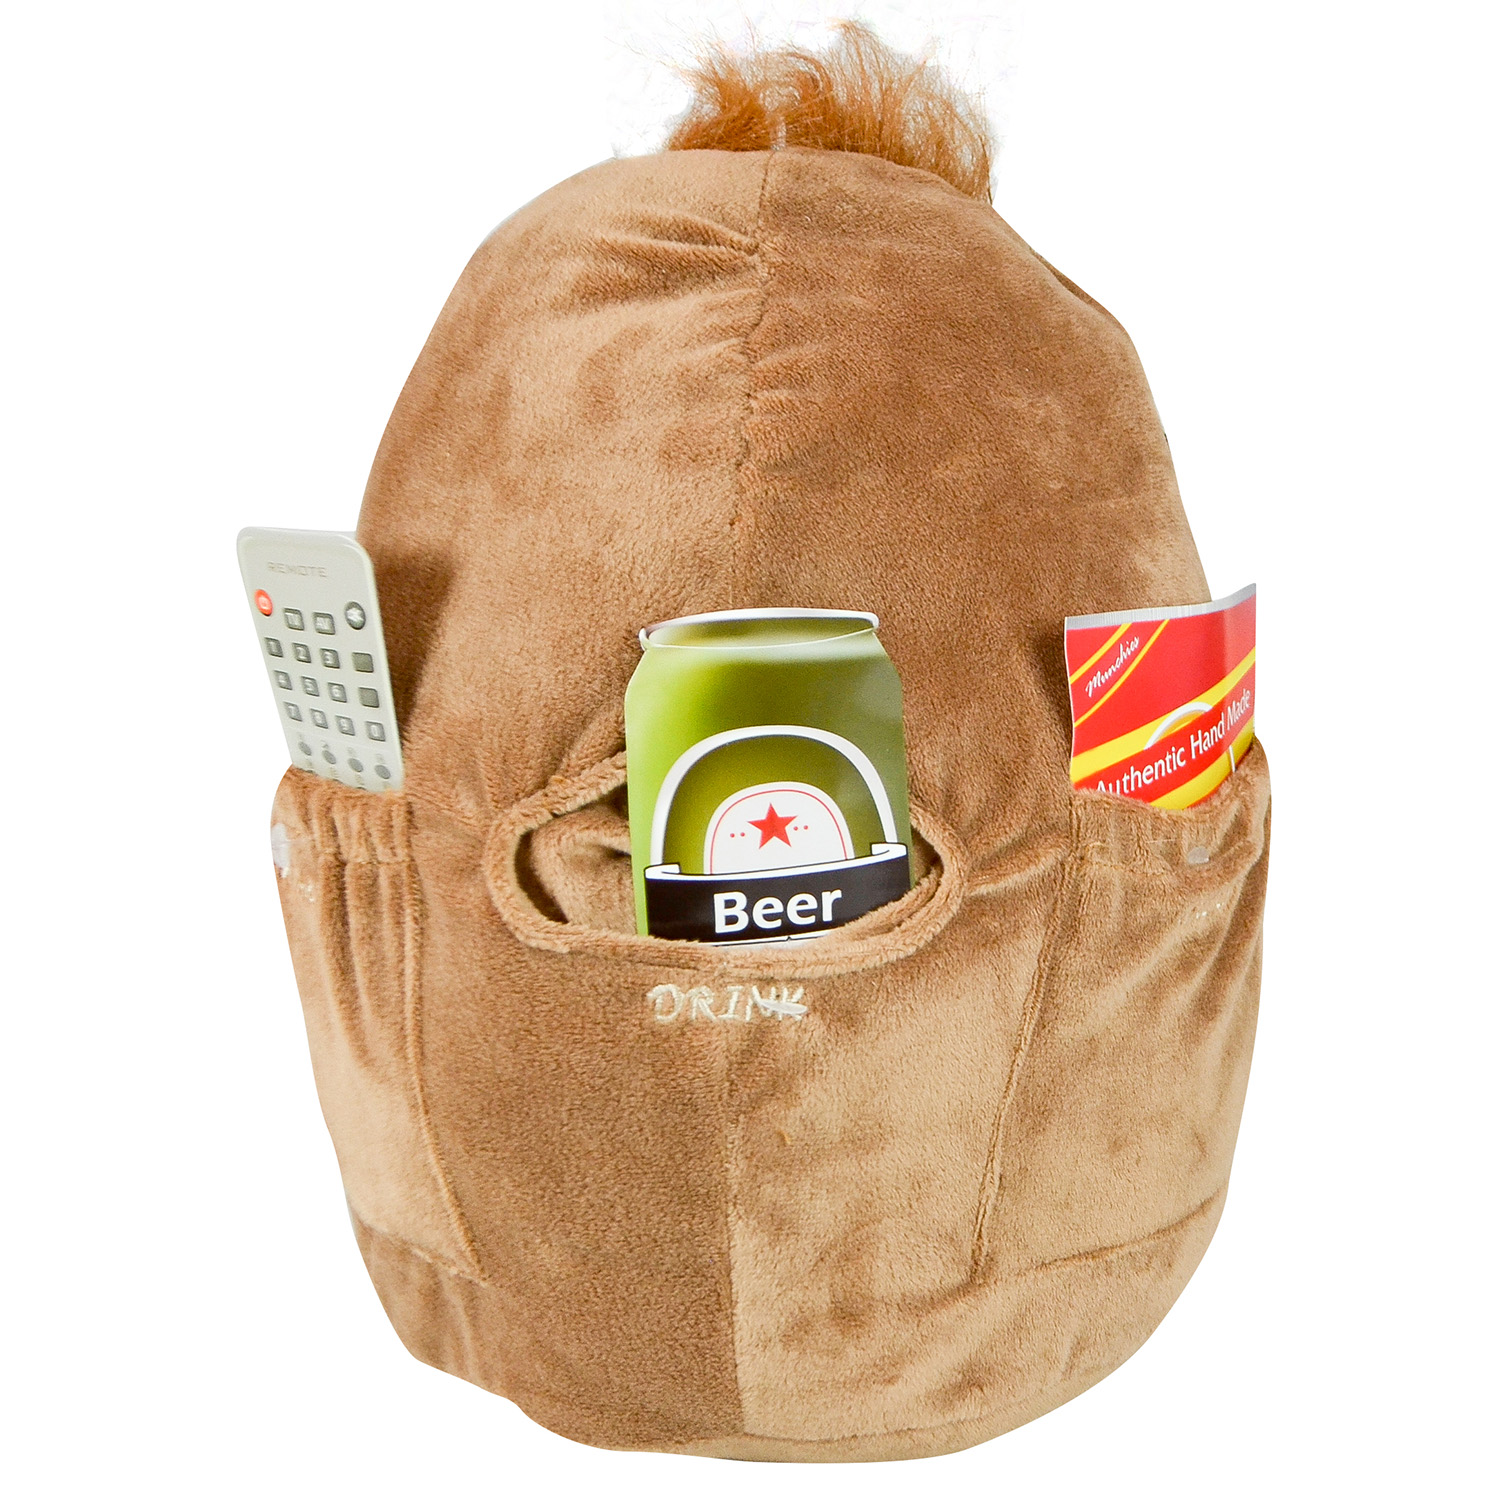 Novelty-Spuddy-Multi-Purpose-Couch-Potato-Remote-Snack-Holder-Pocket-Cushion thumbnail 3